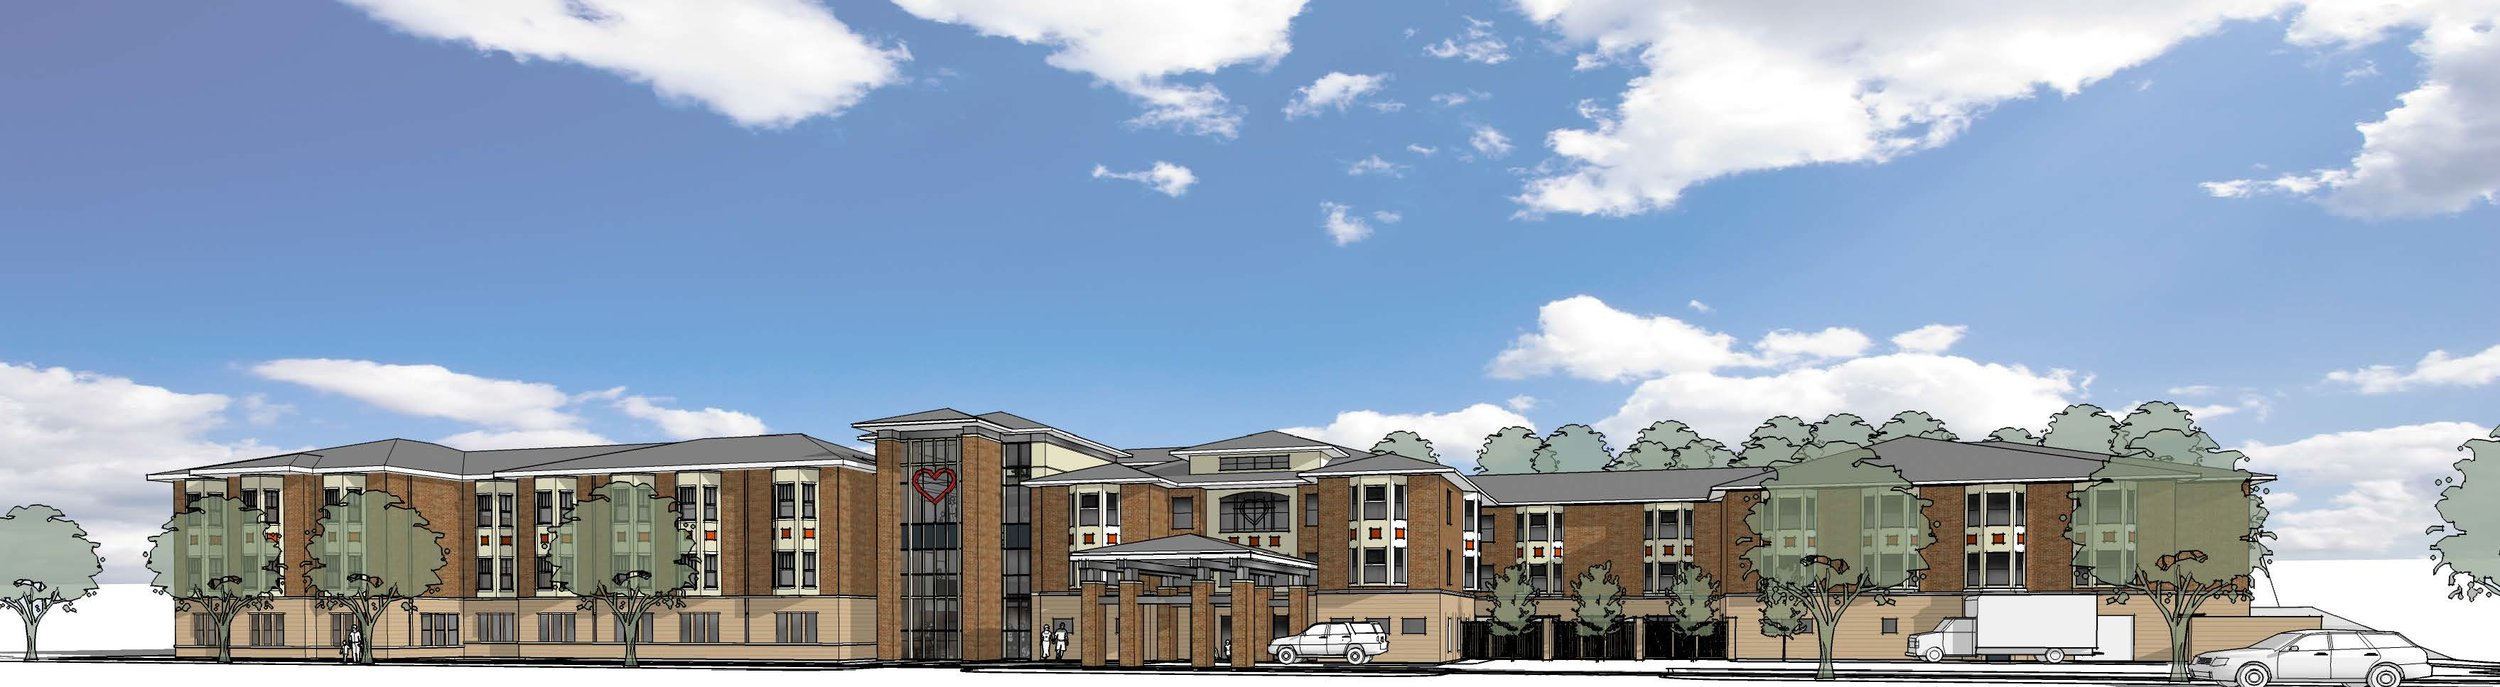 Exterior rendering of the expansion project